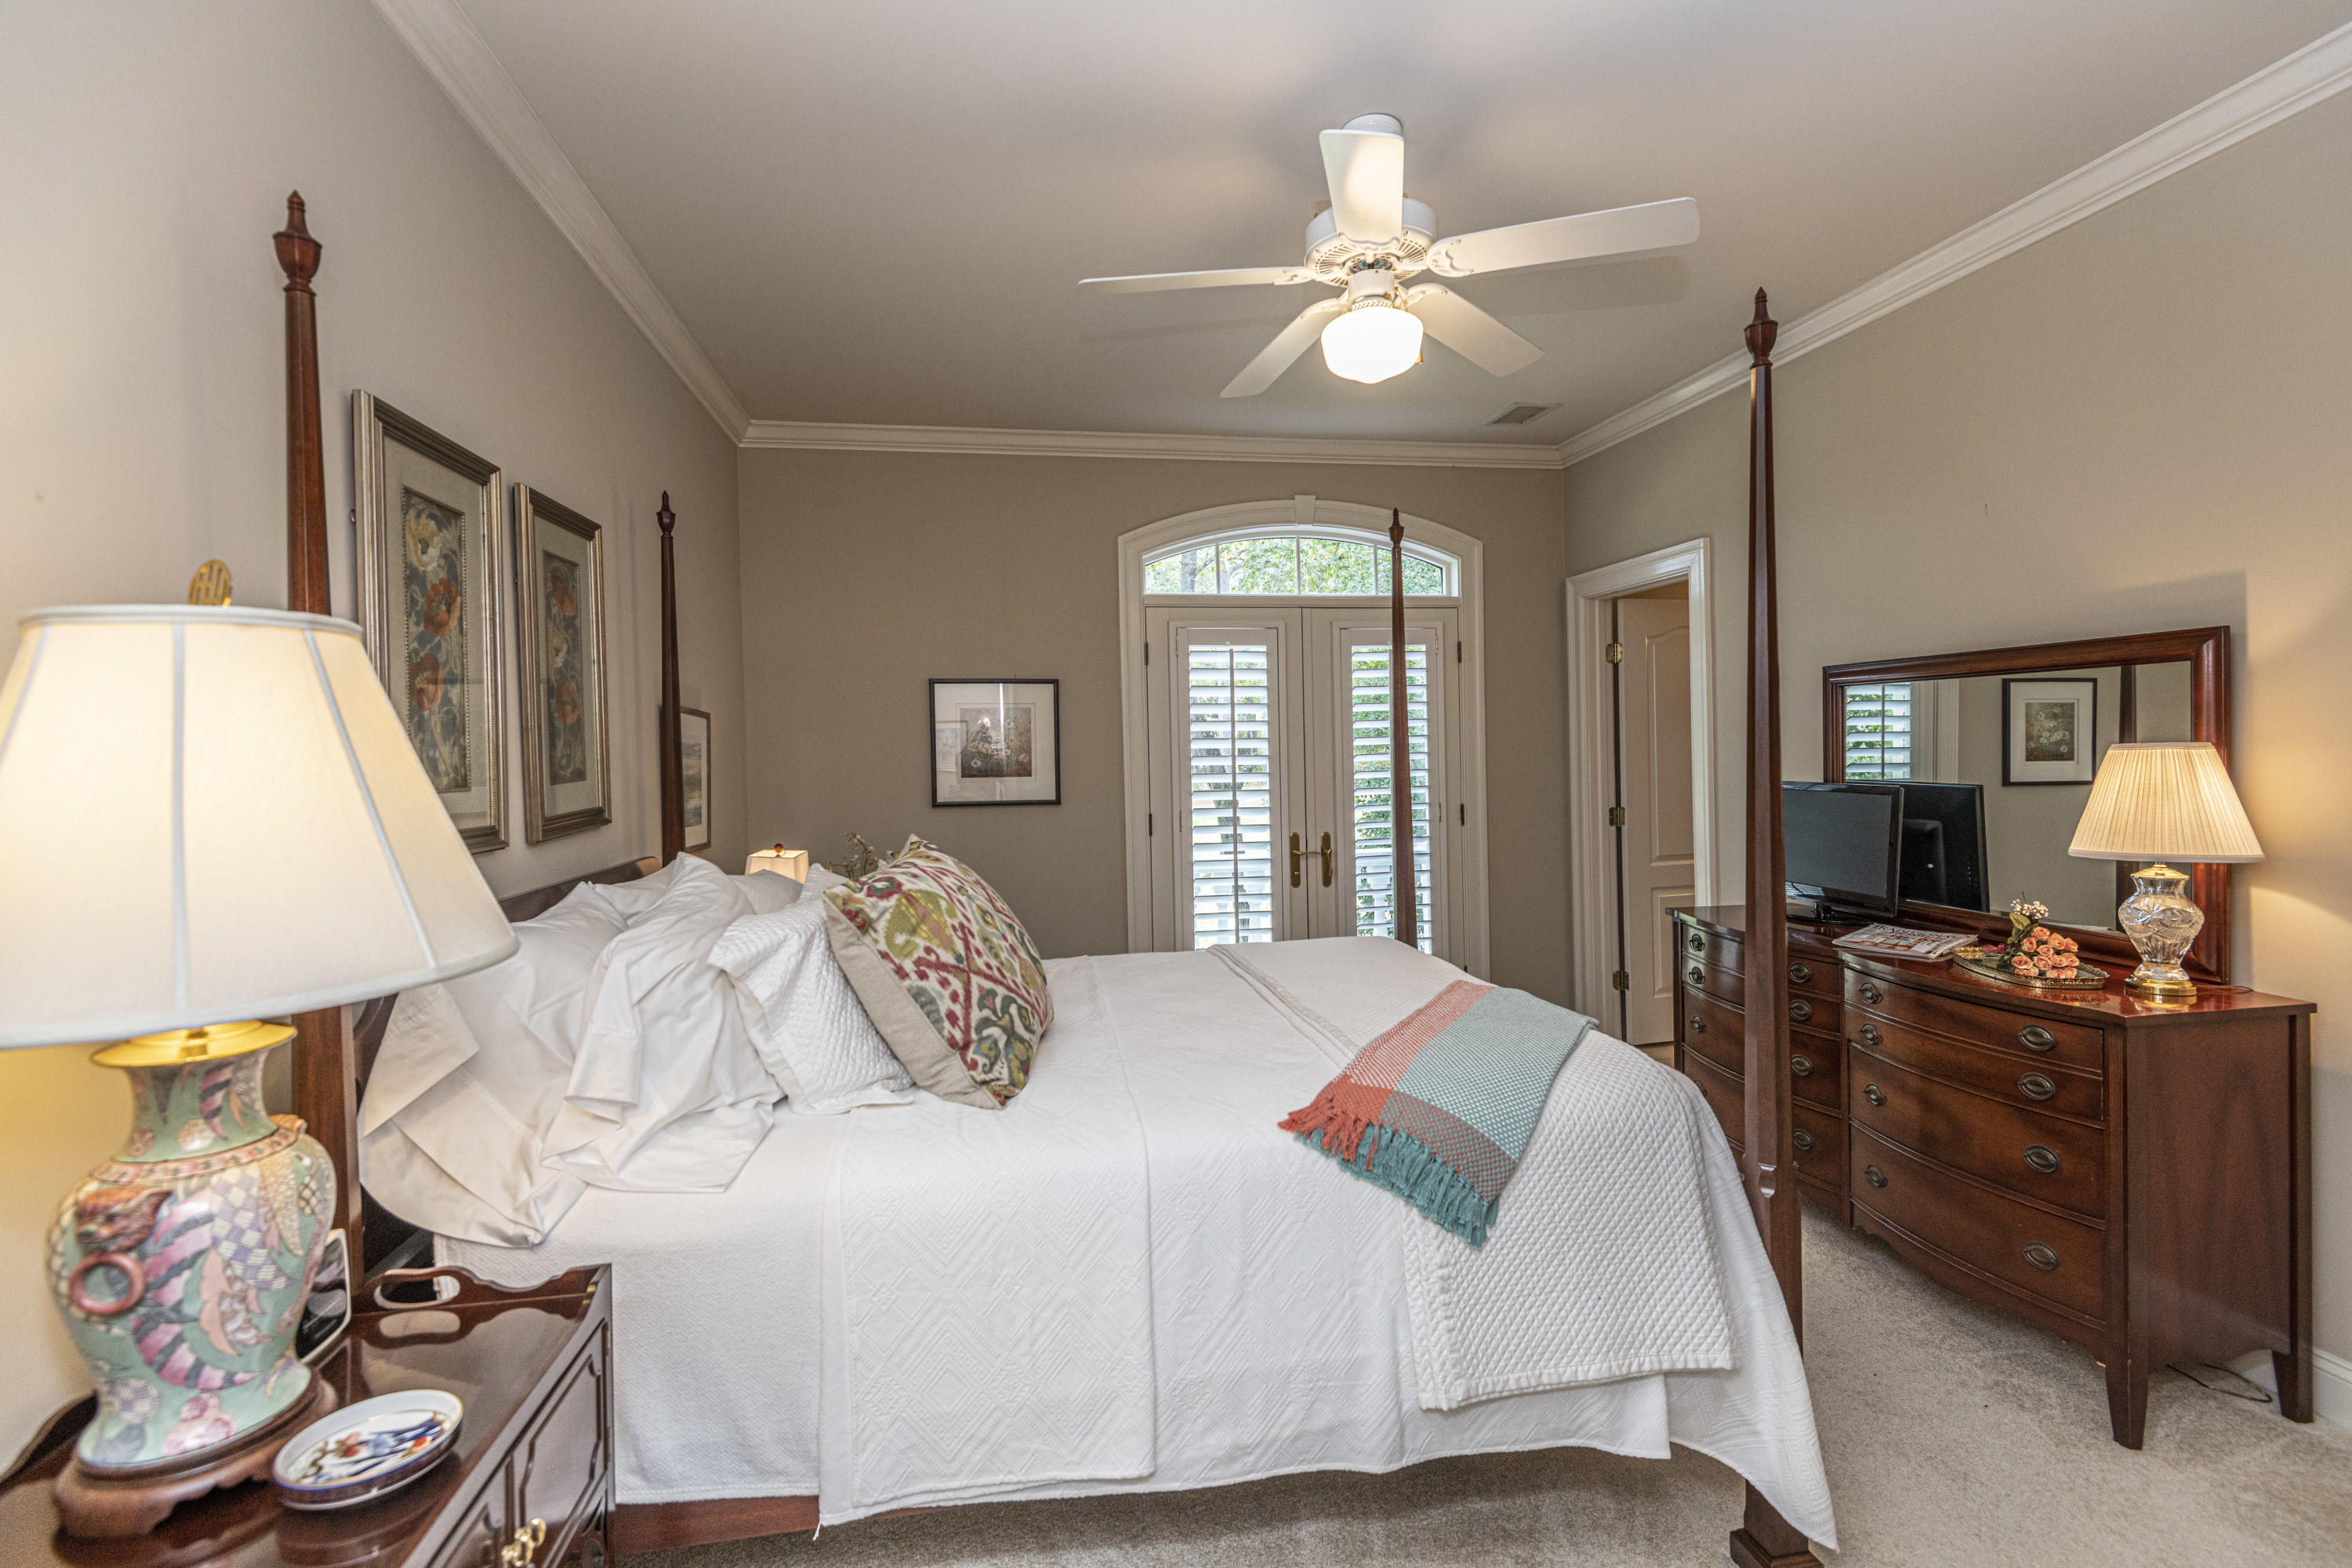 Coosaw Creek Country Club Homes For Sale - 8642 Fairway Woods, North Charleston, SC - 61